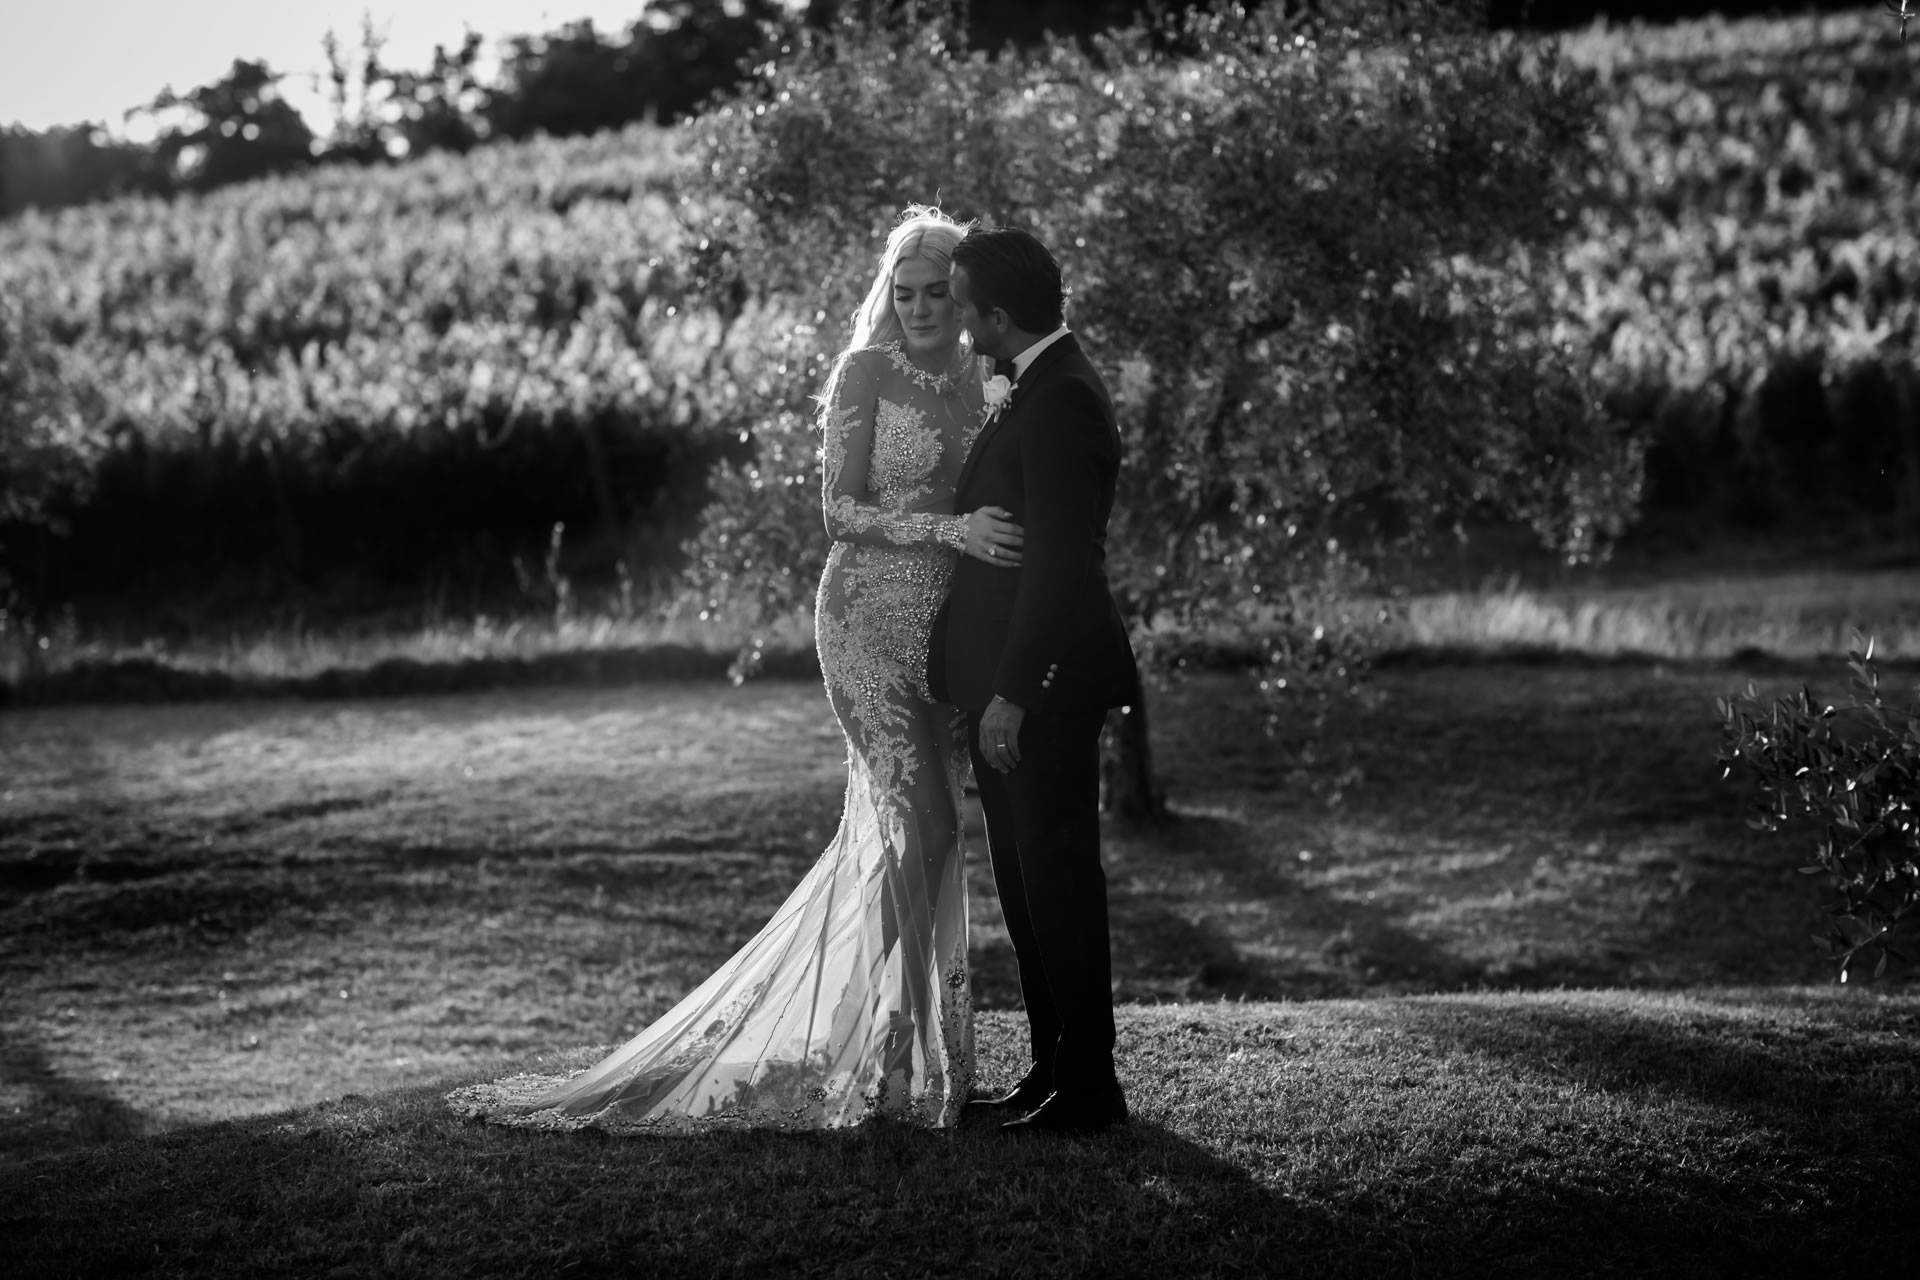 Intimate Moment - 46 :: Exciting wedding in the countryside of Siena :: Luxury wedding photography - 45 :: Intimate Moment - 46